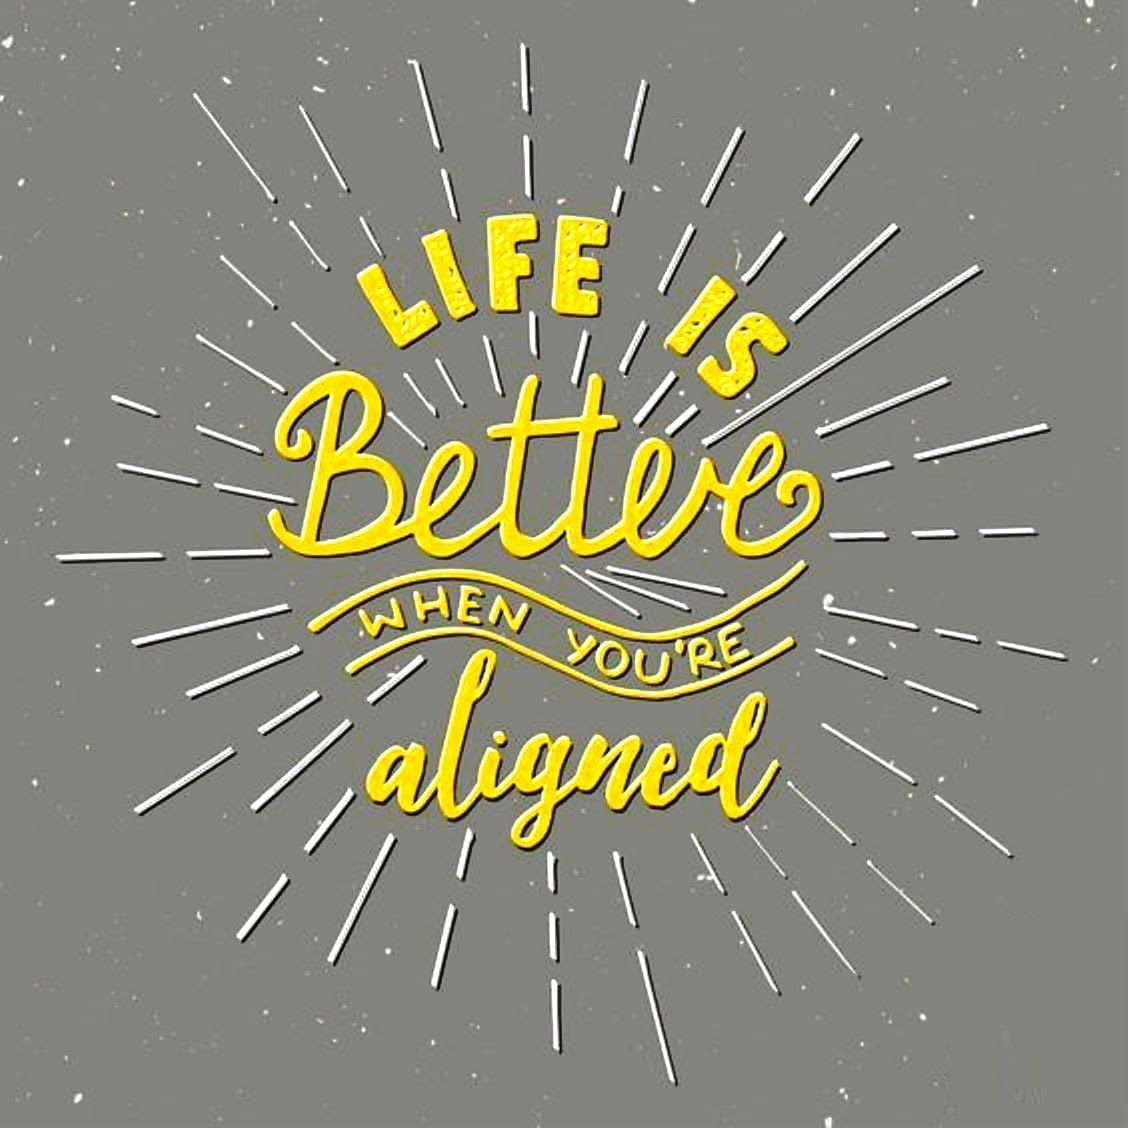 Life is better when you are aligned tell someone about